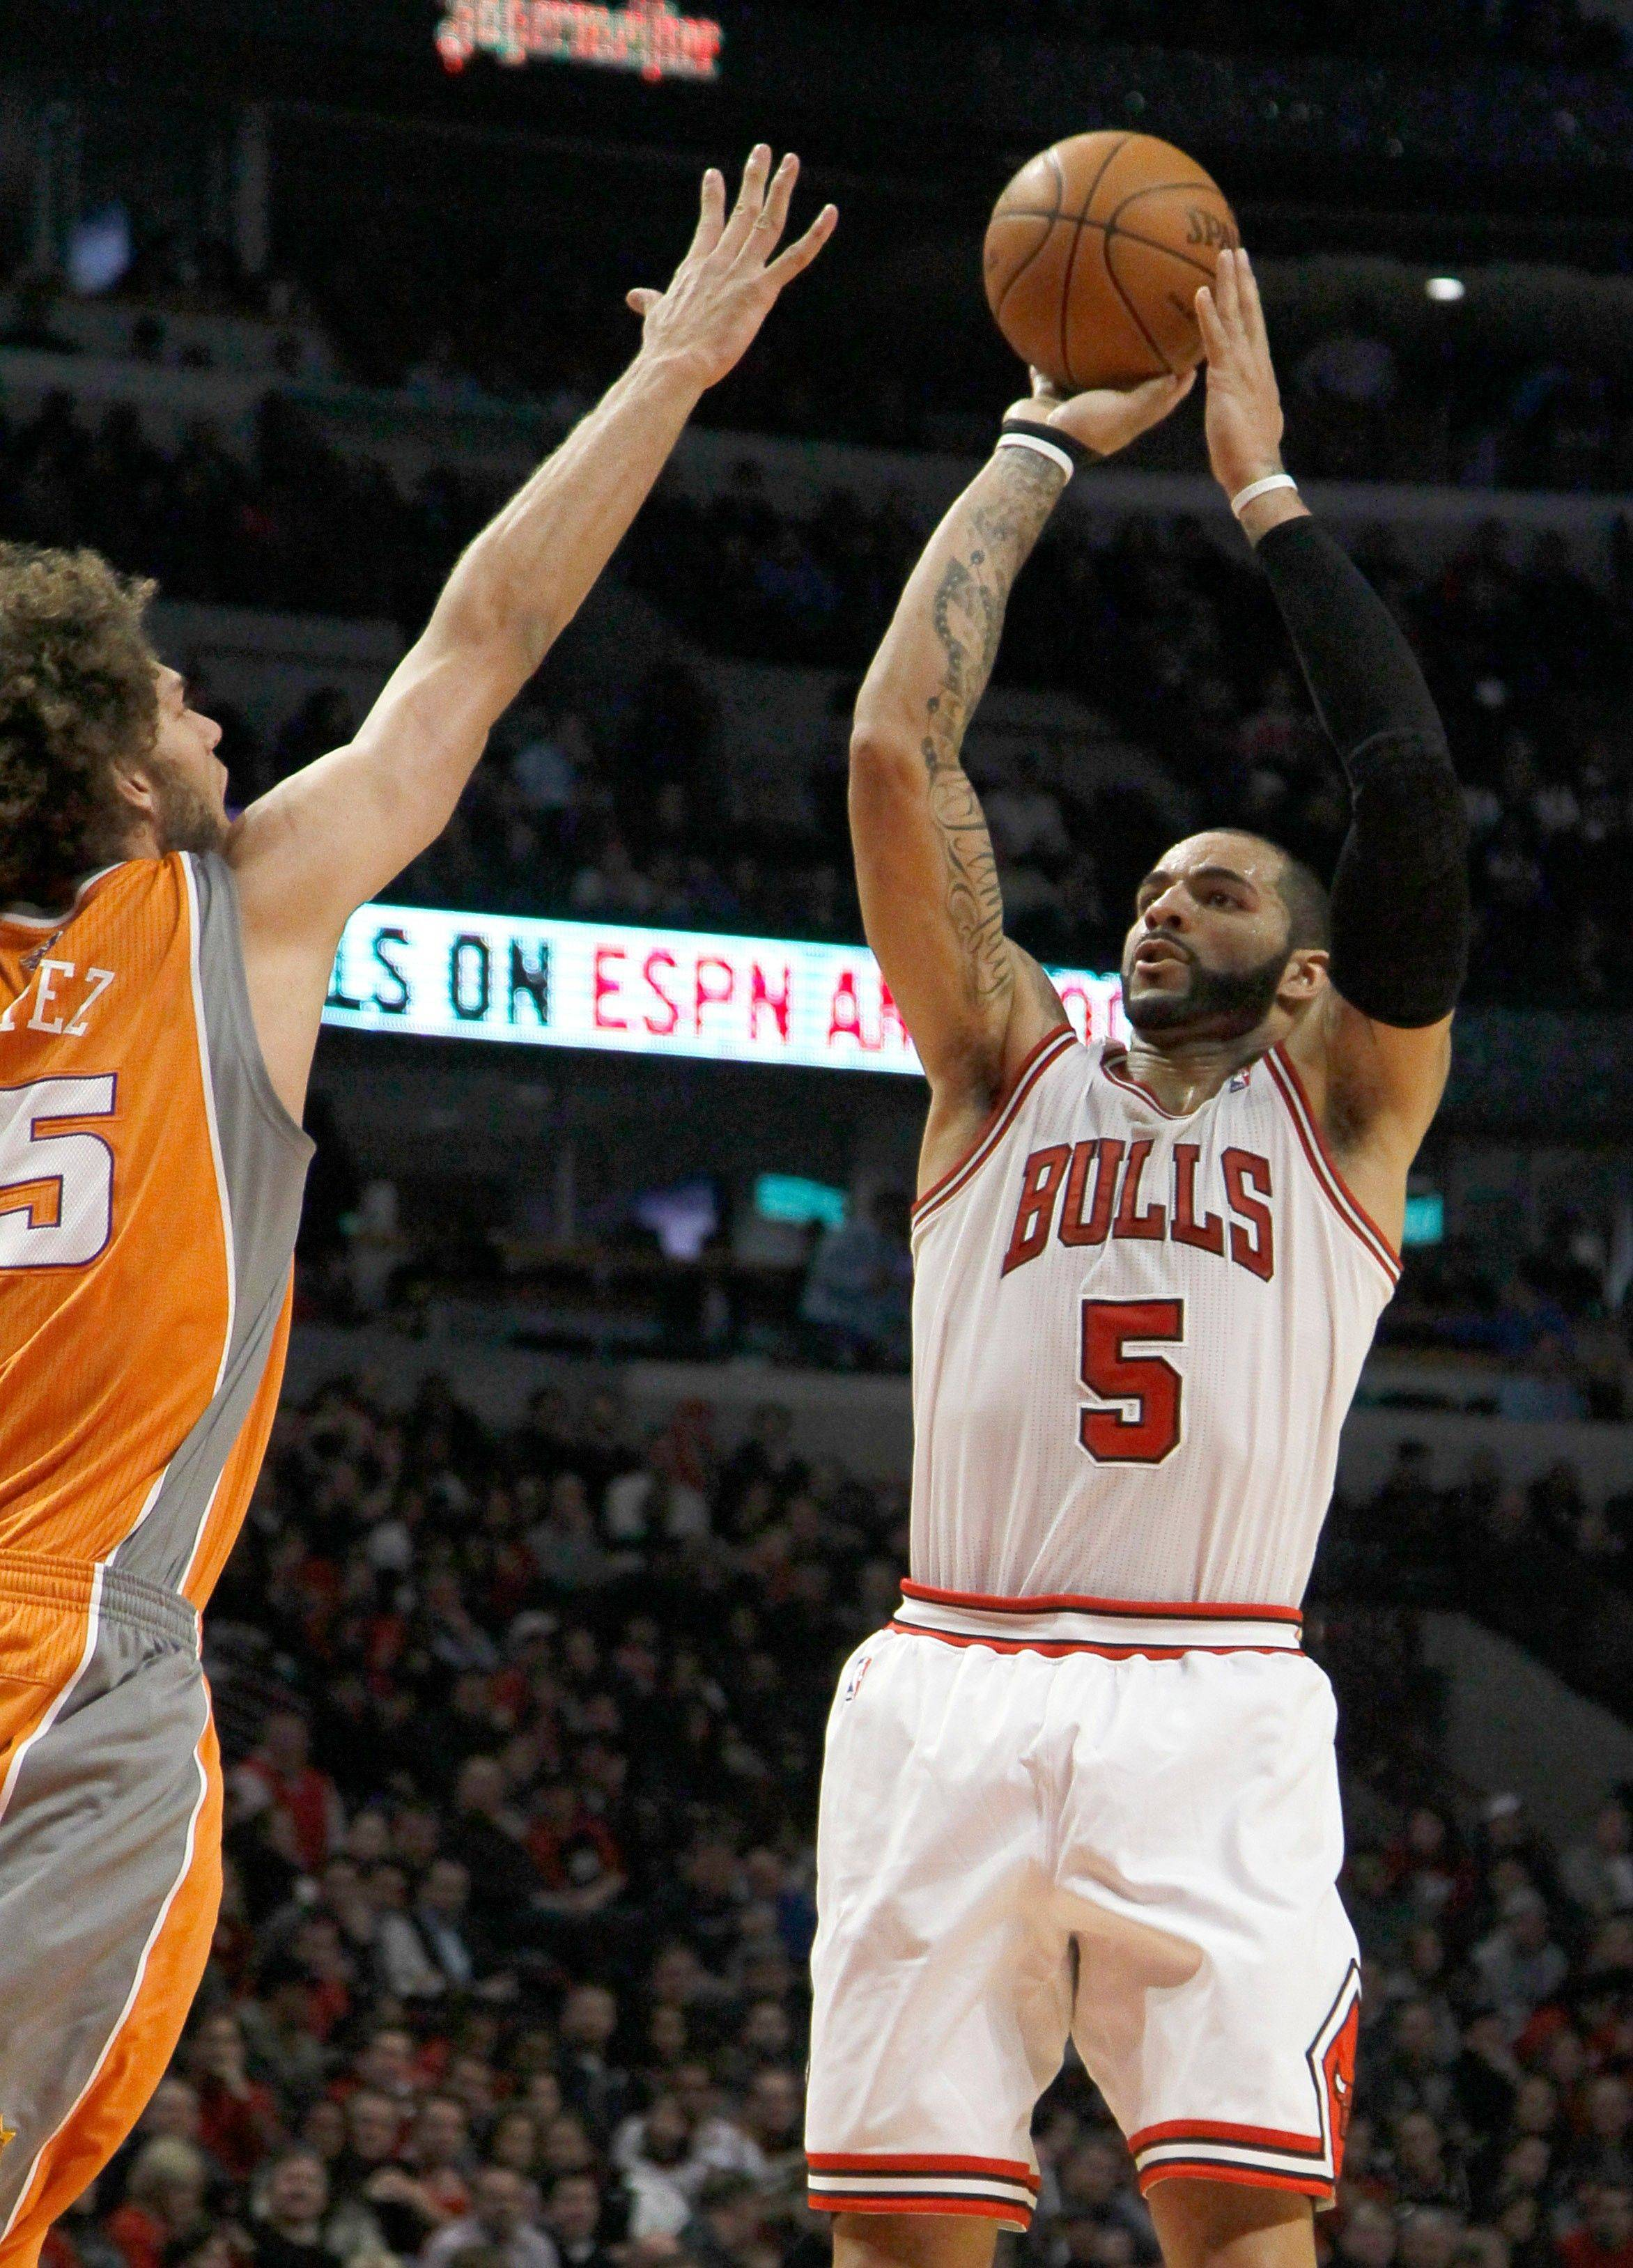 With Rose out, Boozer steps up with 31 points